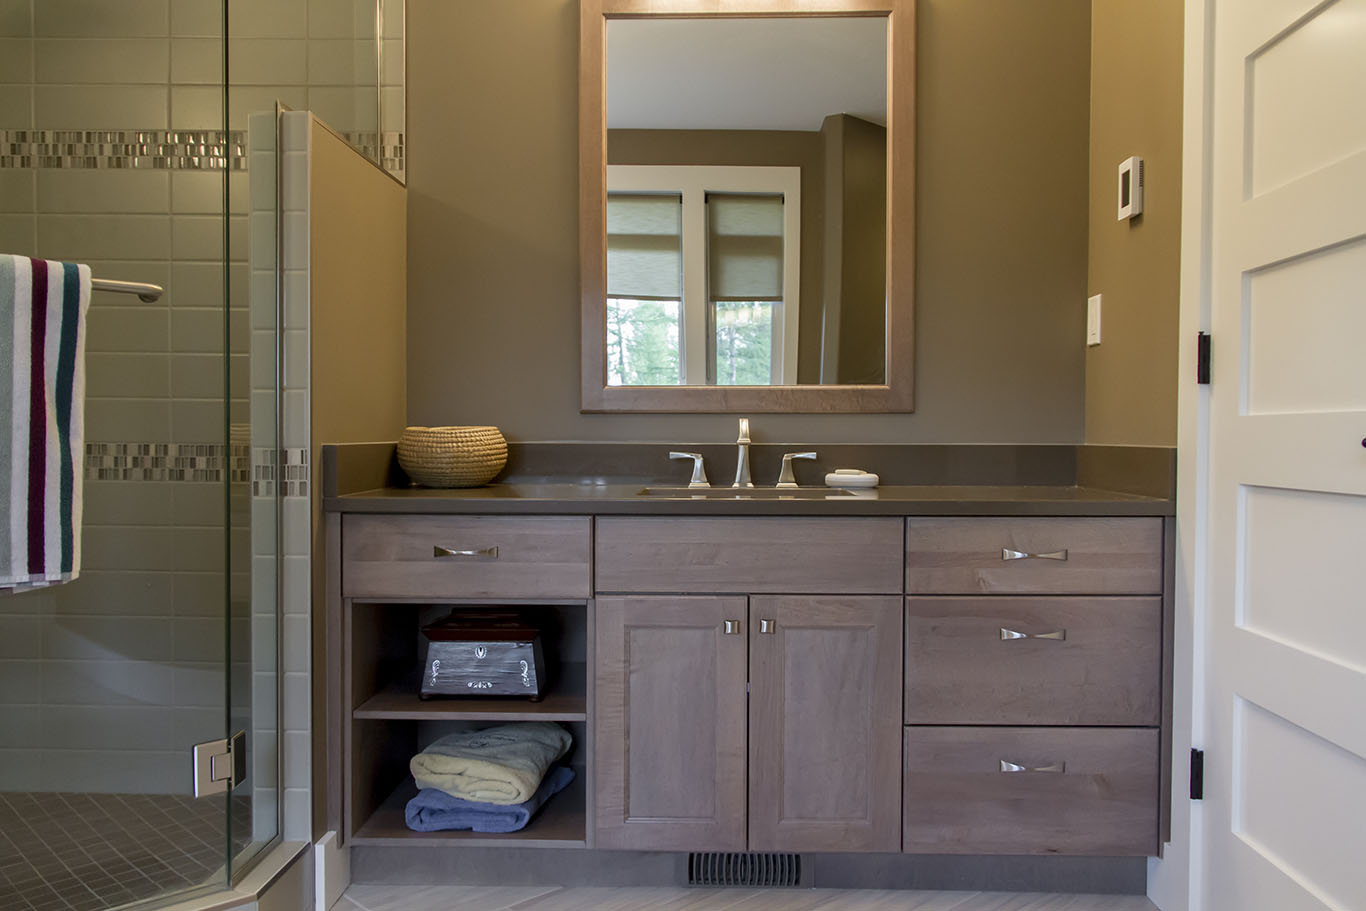 Bathroom-vanity-custom-cabinetry-countertops